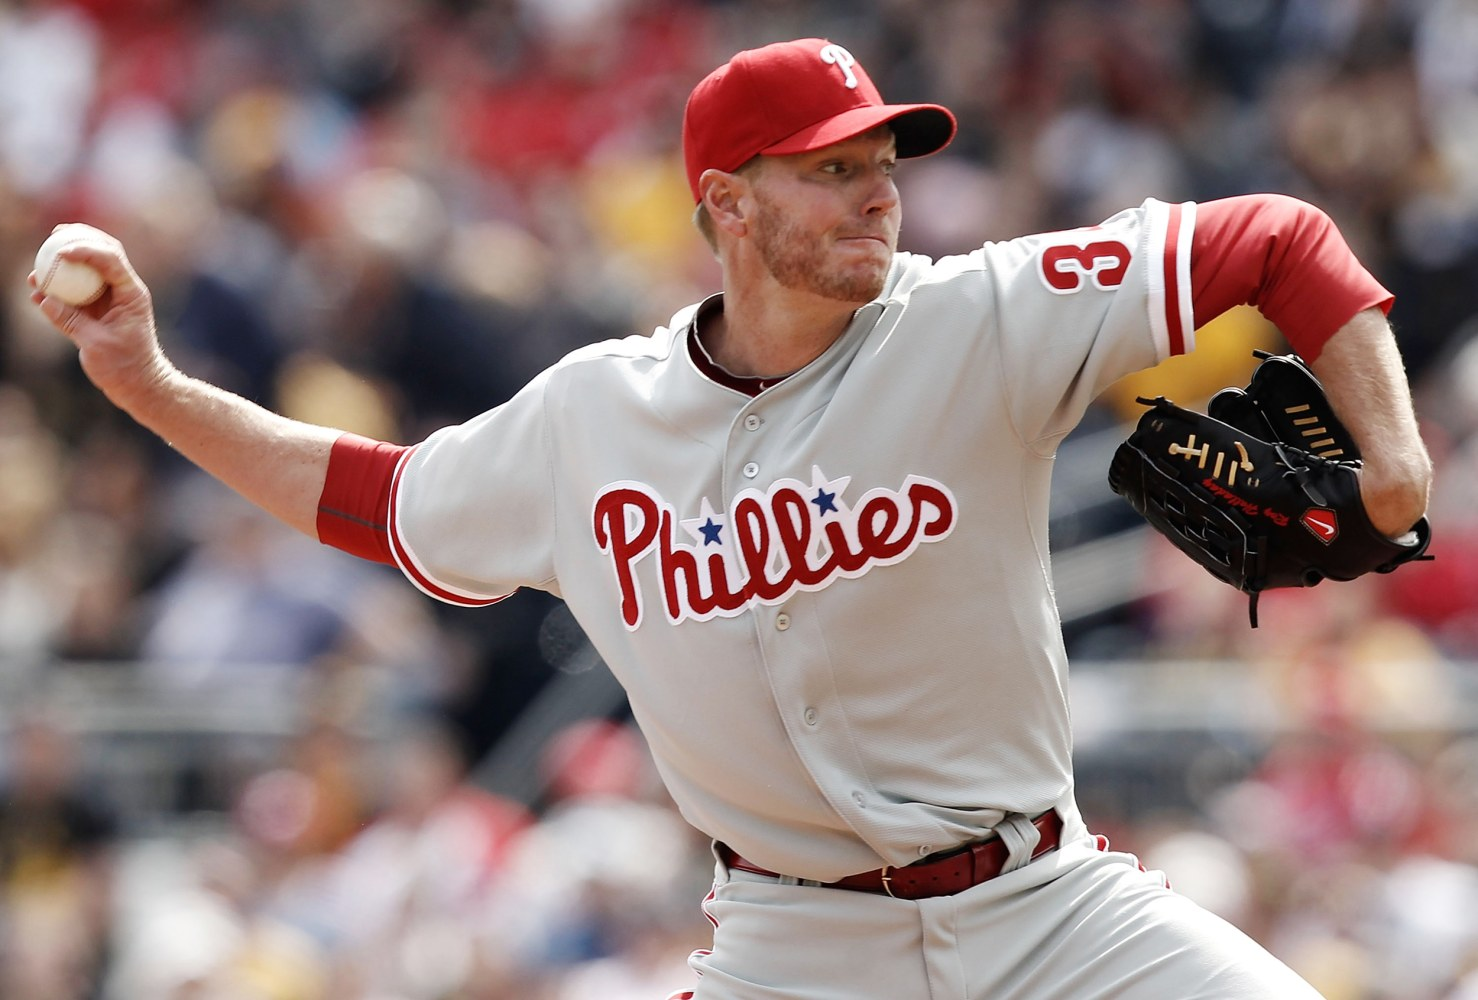 Former MLB pitcher Roy Halladay killed in FL plane crash